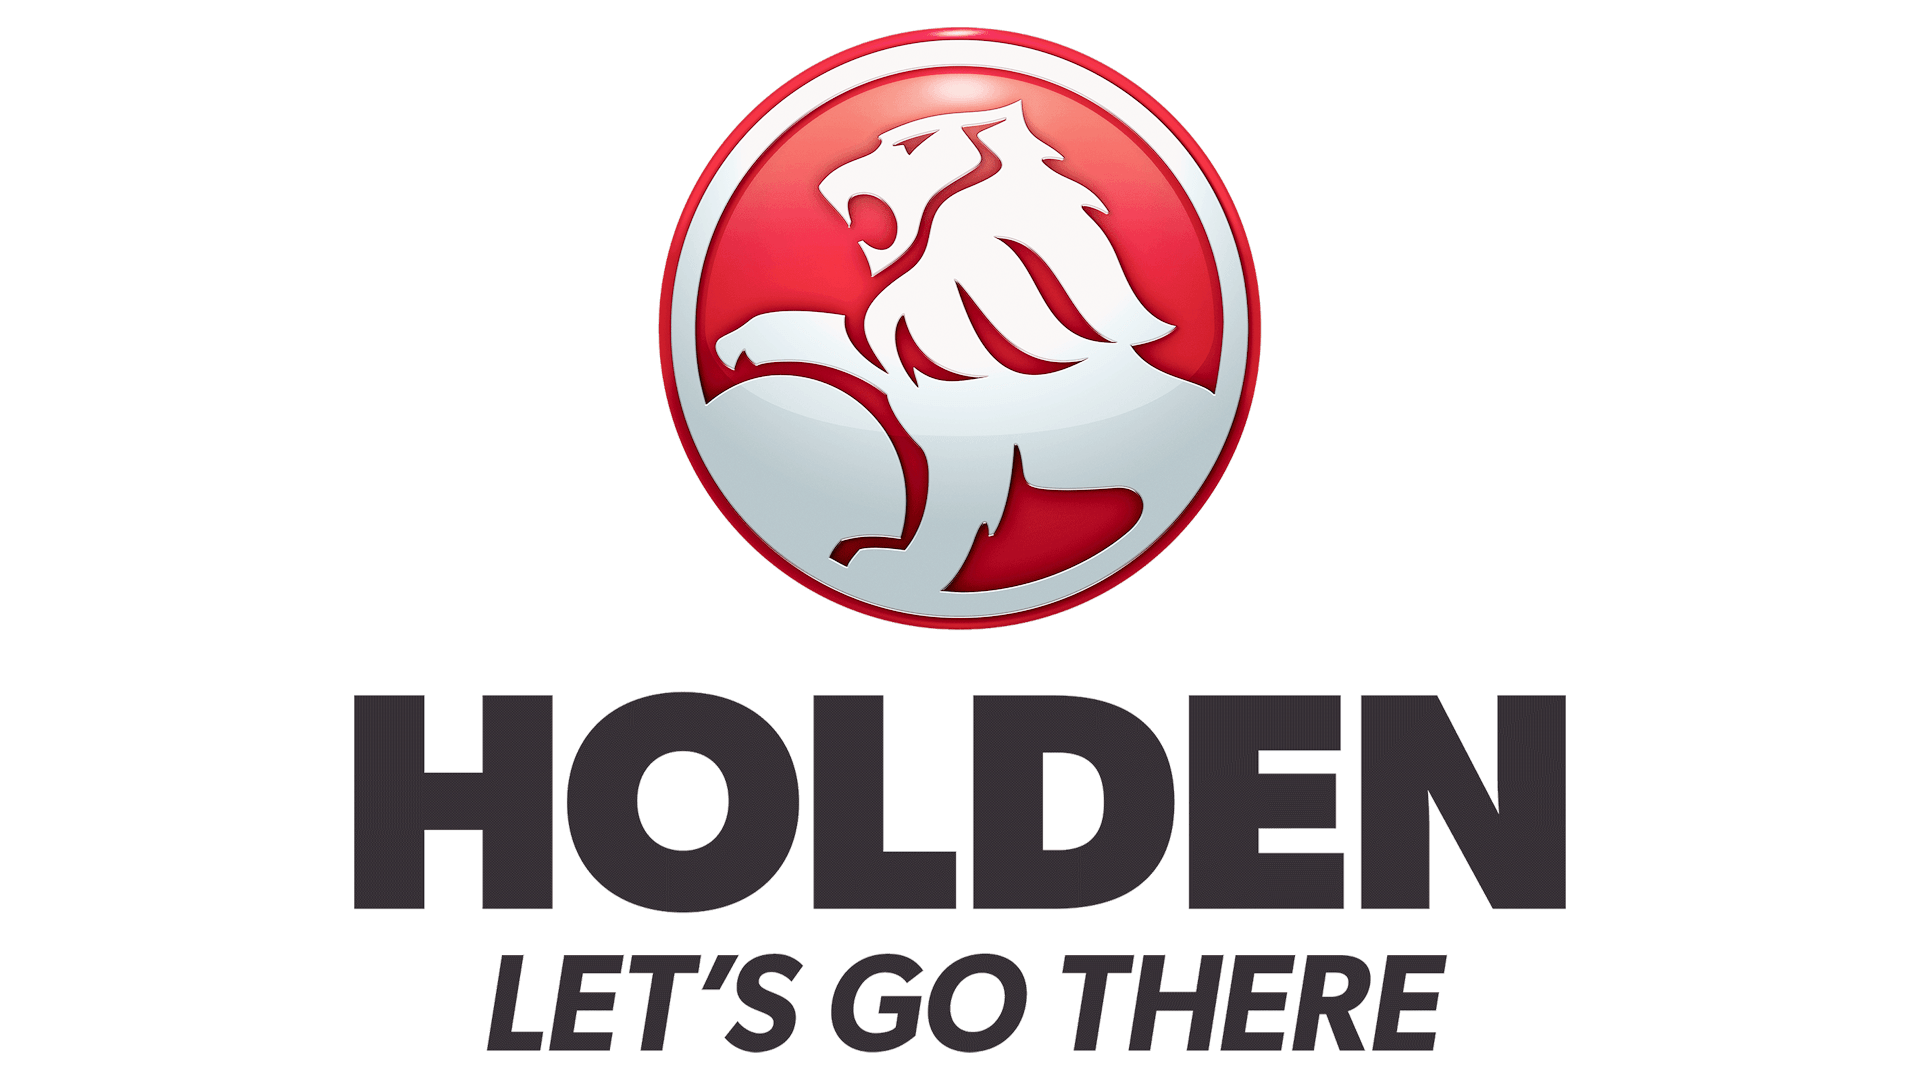 Holden Logo - Holden Logo, HD Png, Meaning, Information | Carlogos.org